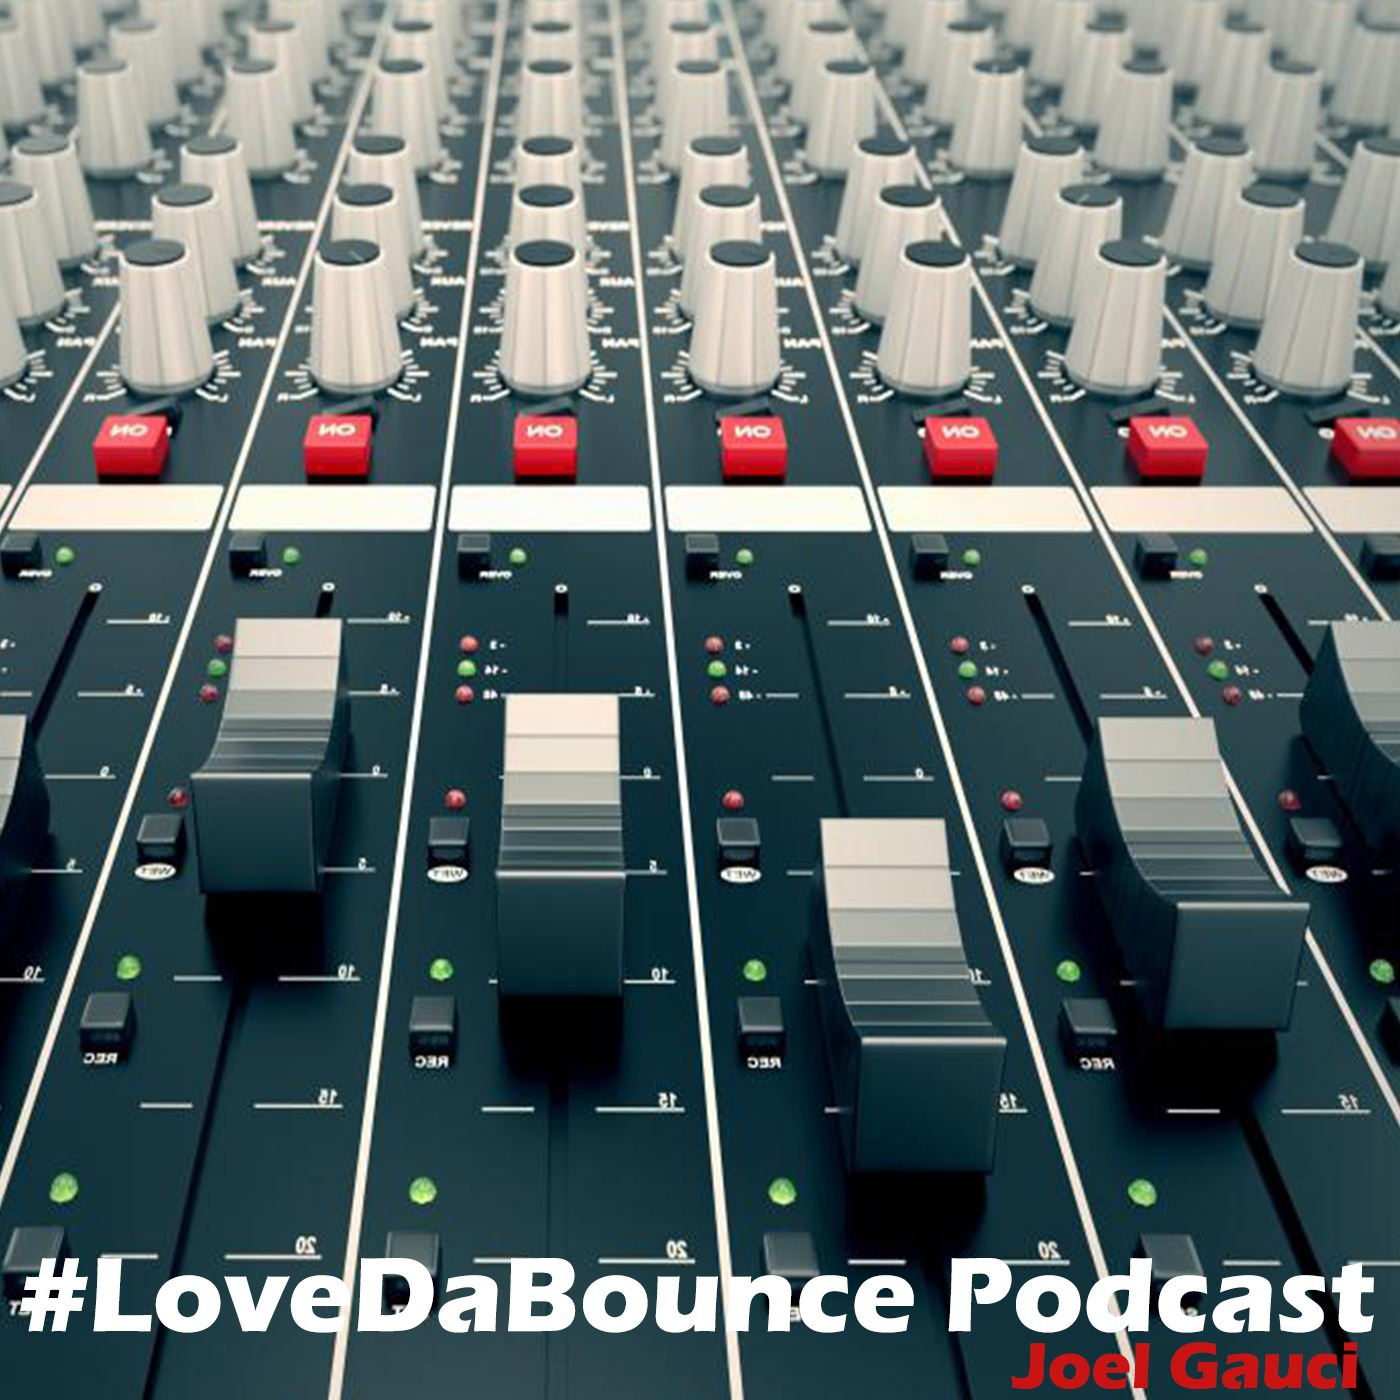 #LovedaBounce Podcast